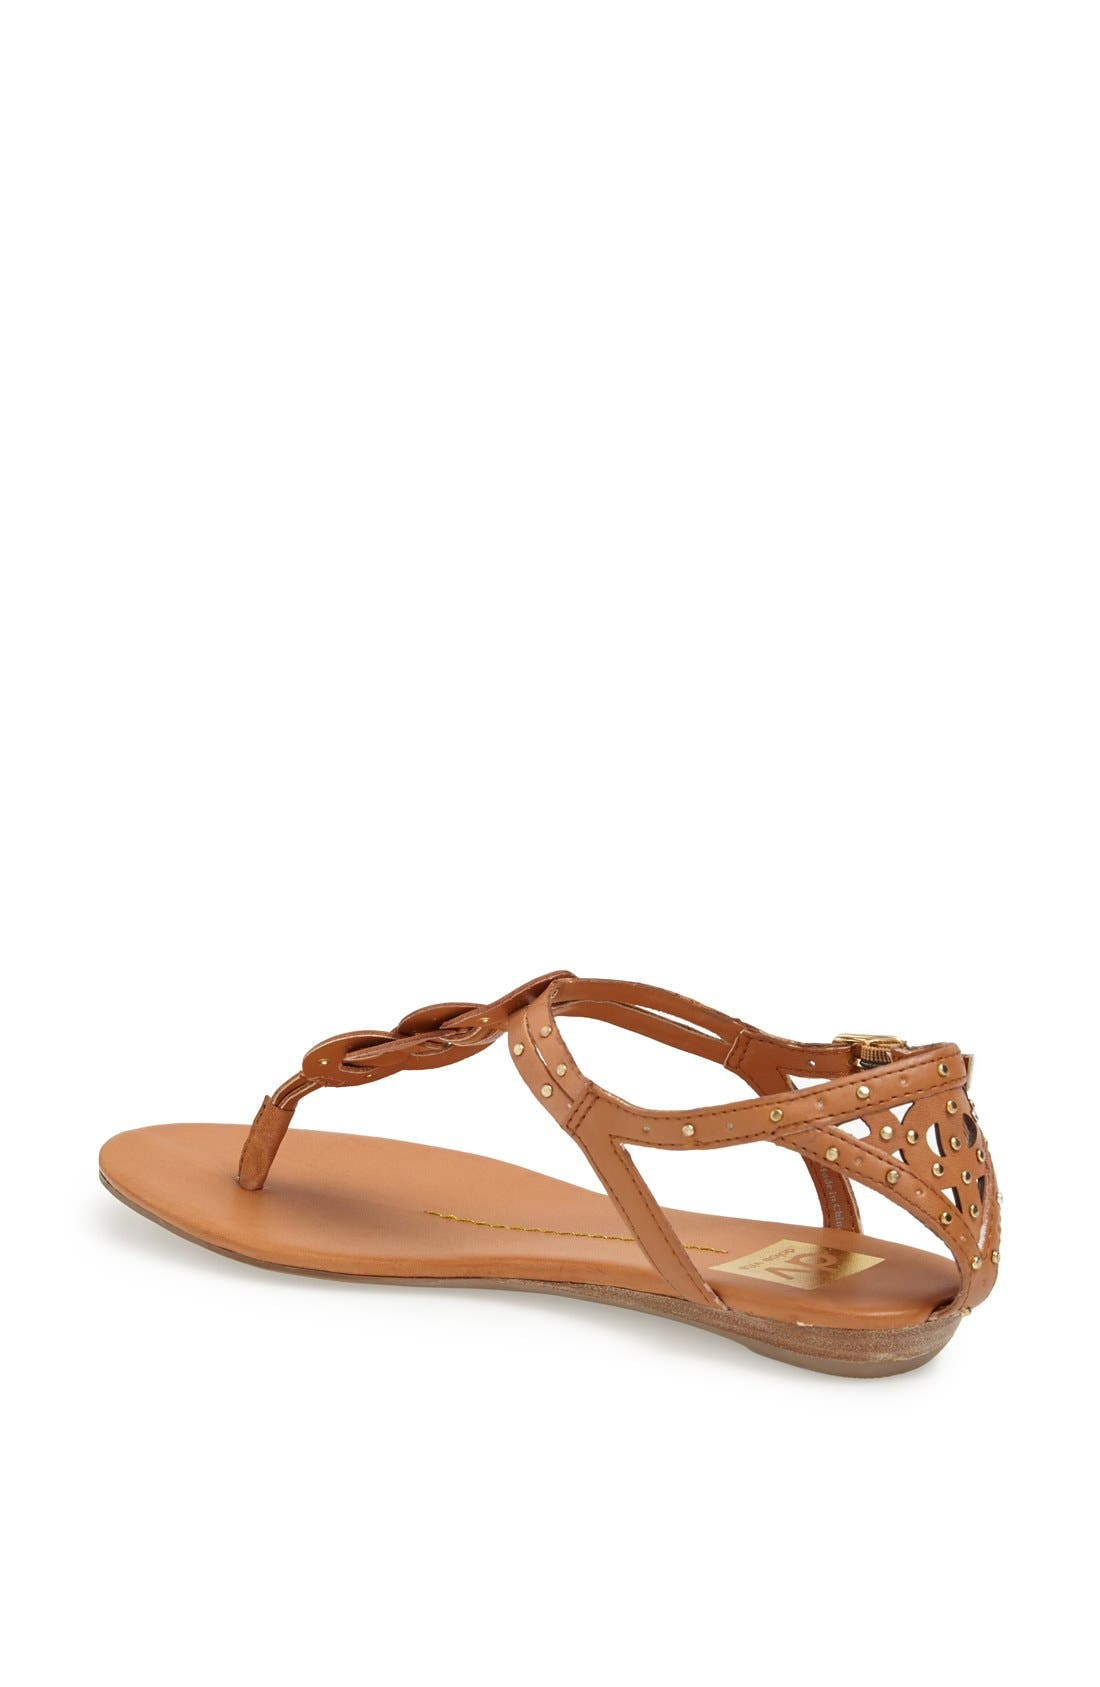 Alternate Image 2  - DV by Dolce Vita 'Azania' Leather Thong Sandal